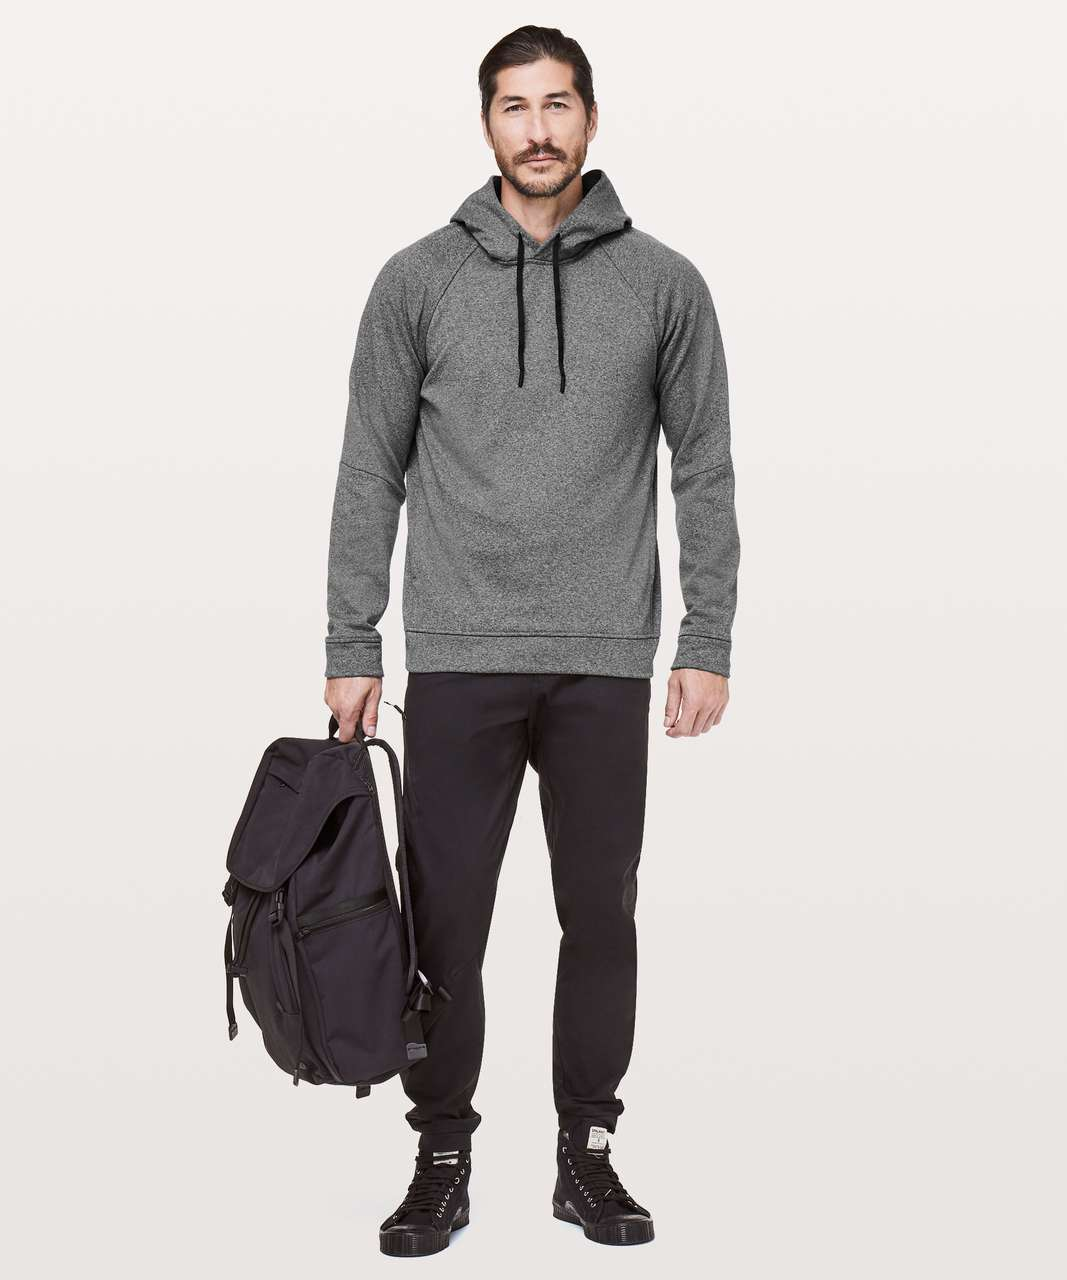 Lululemon City Sweat Pullover Hoodie *Thermo - Heathered Light Cast